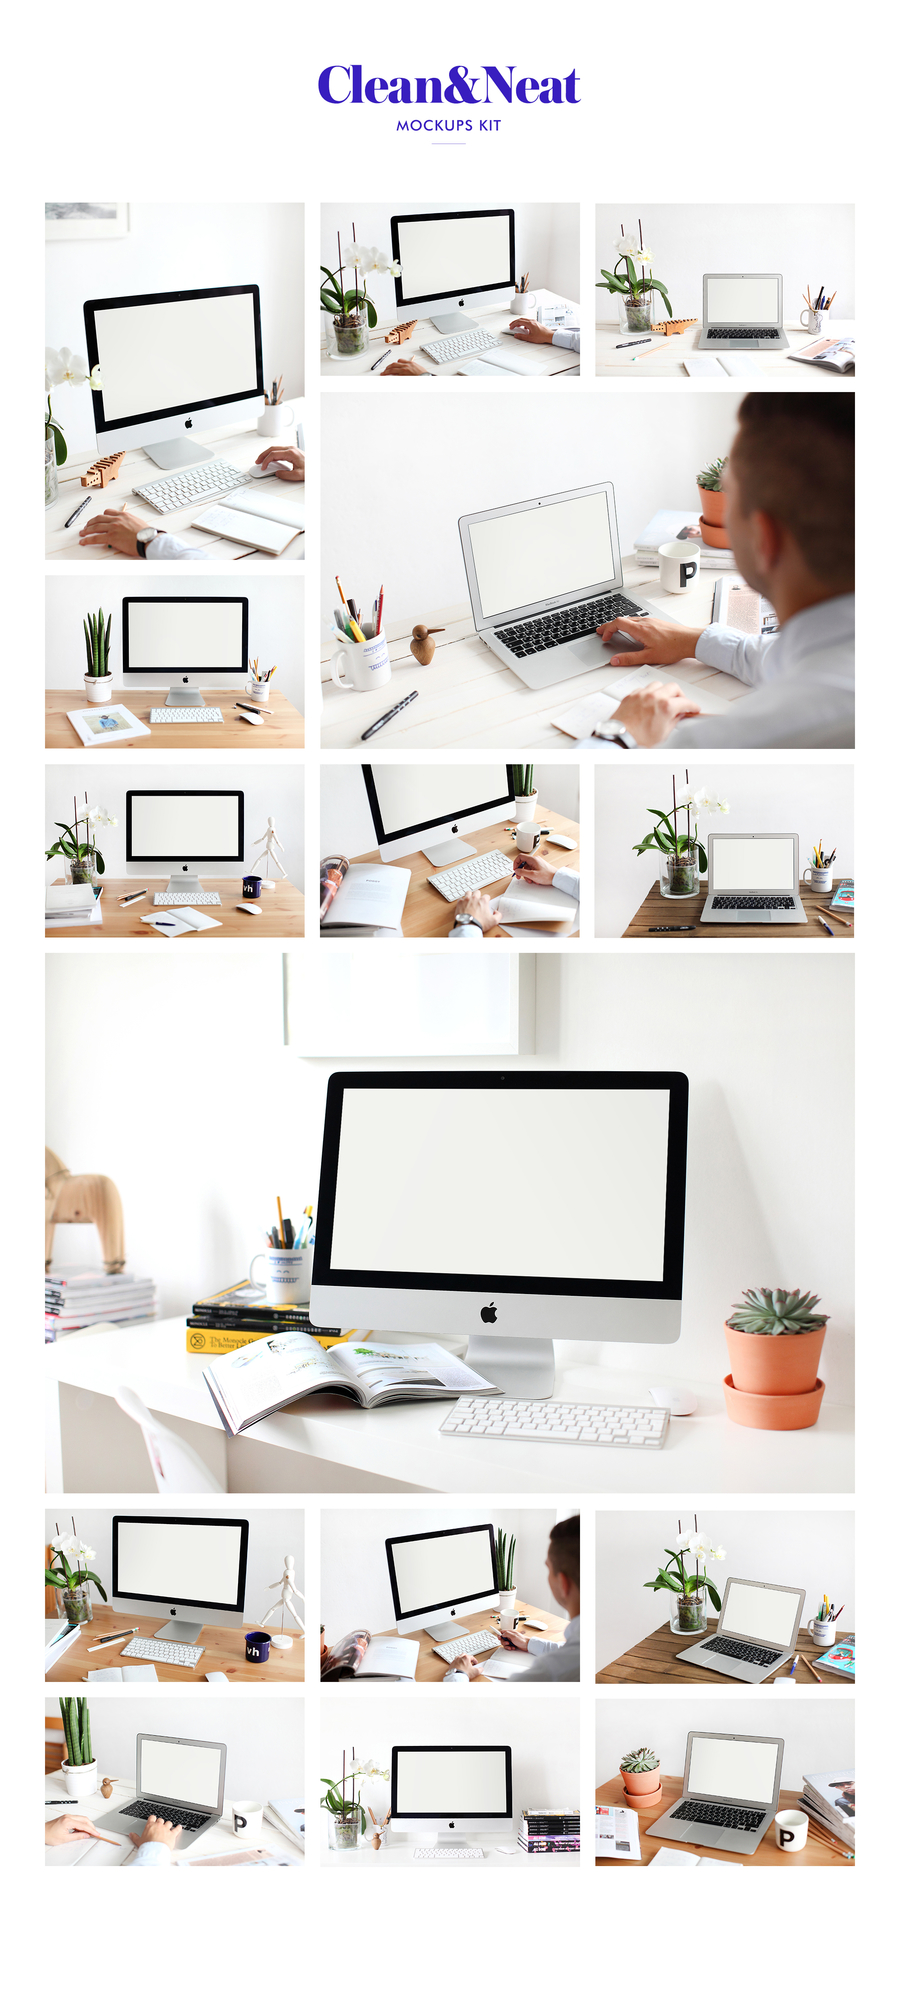 cleanneat-imac-macbook-mockups-2